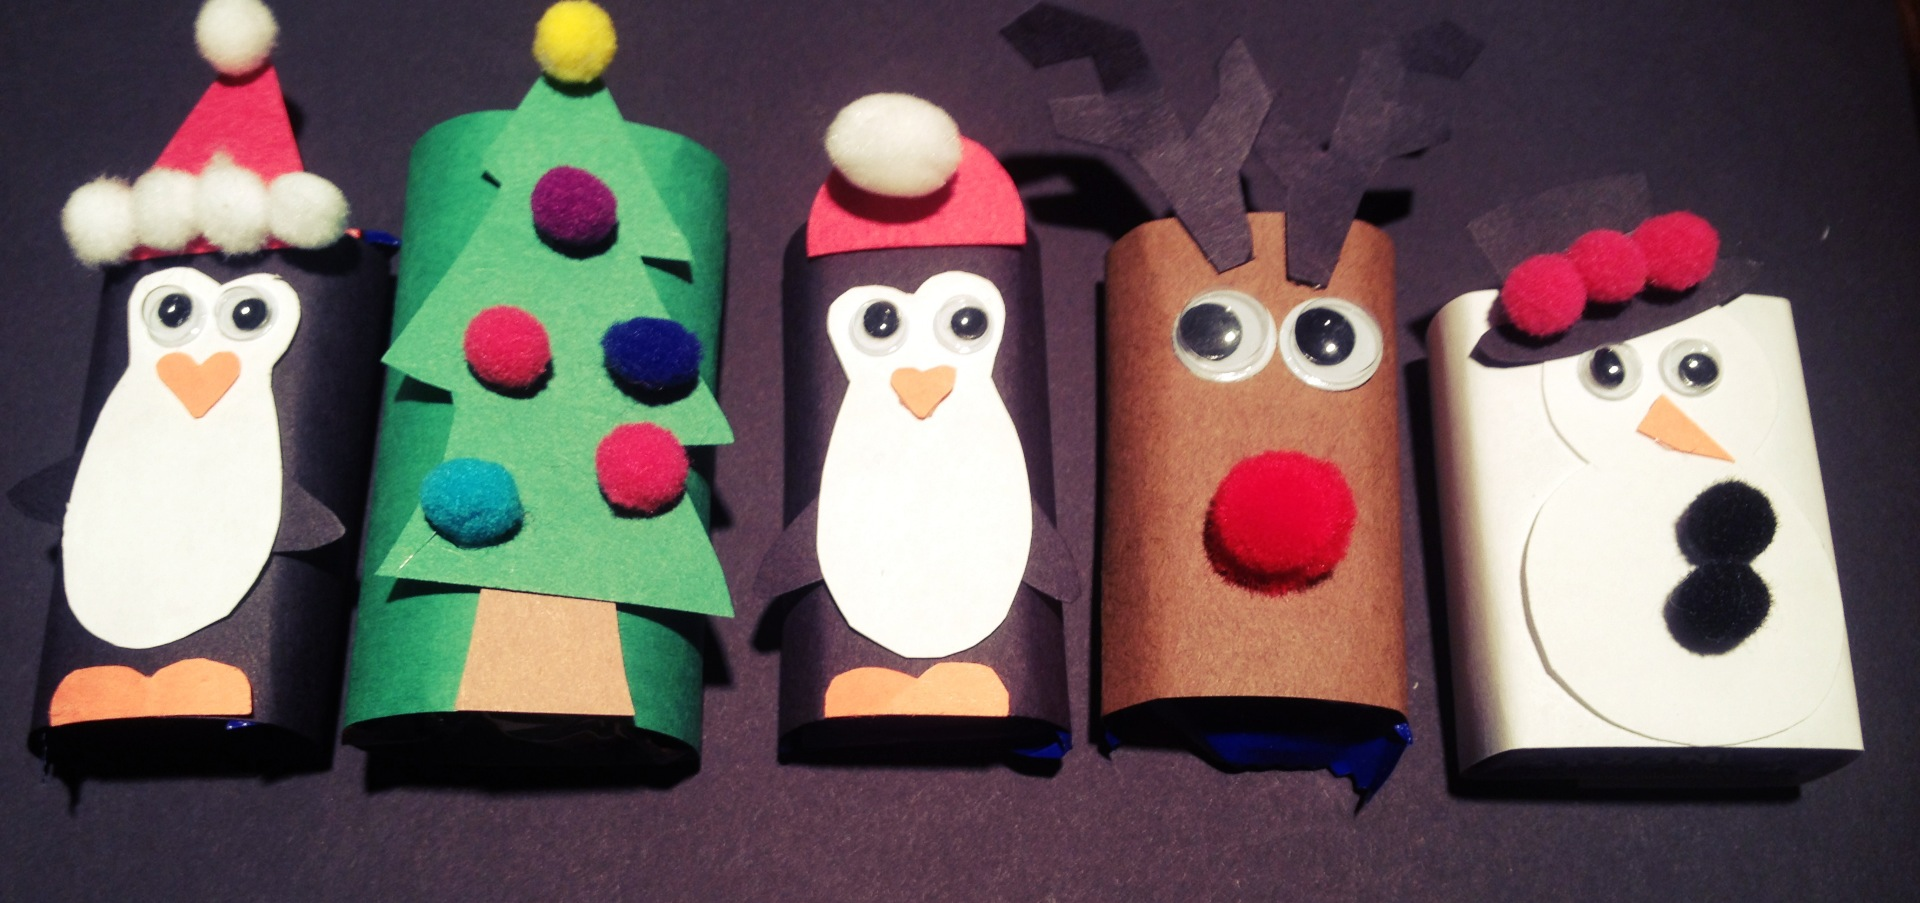 easy christmas gifts for preschool teachers from kids